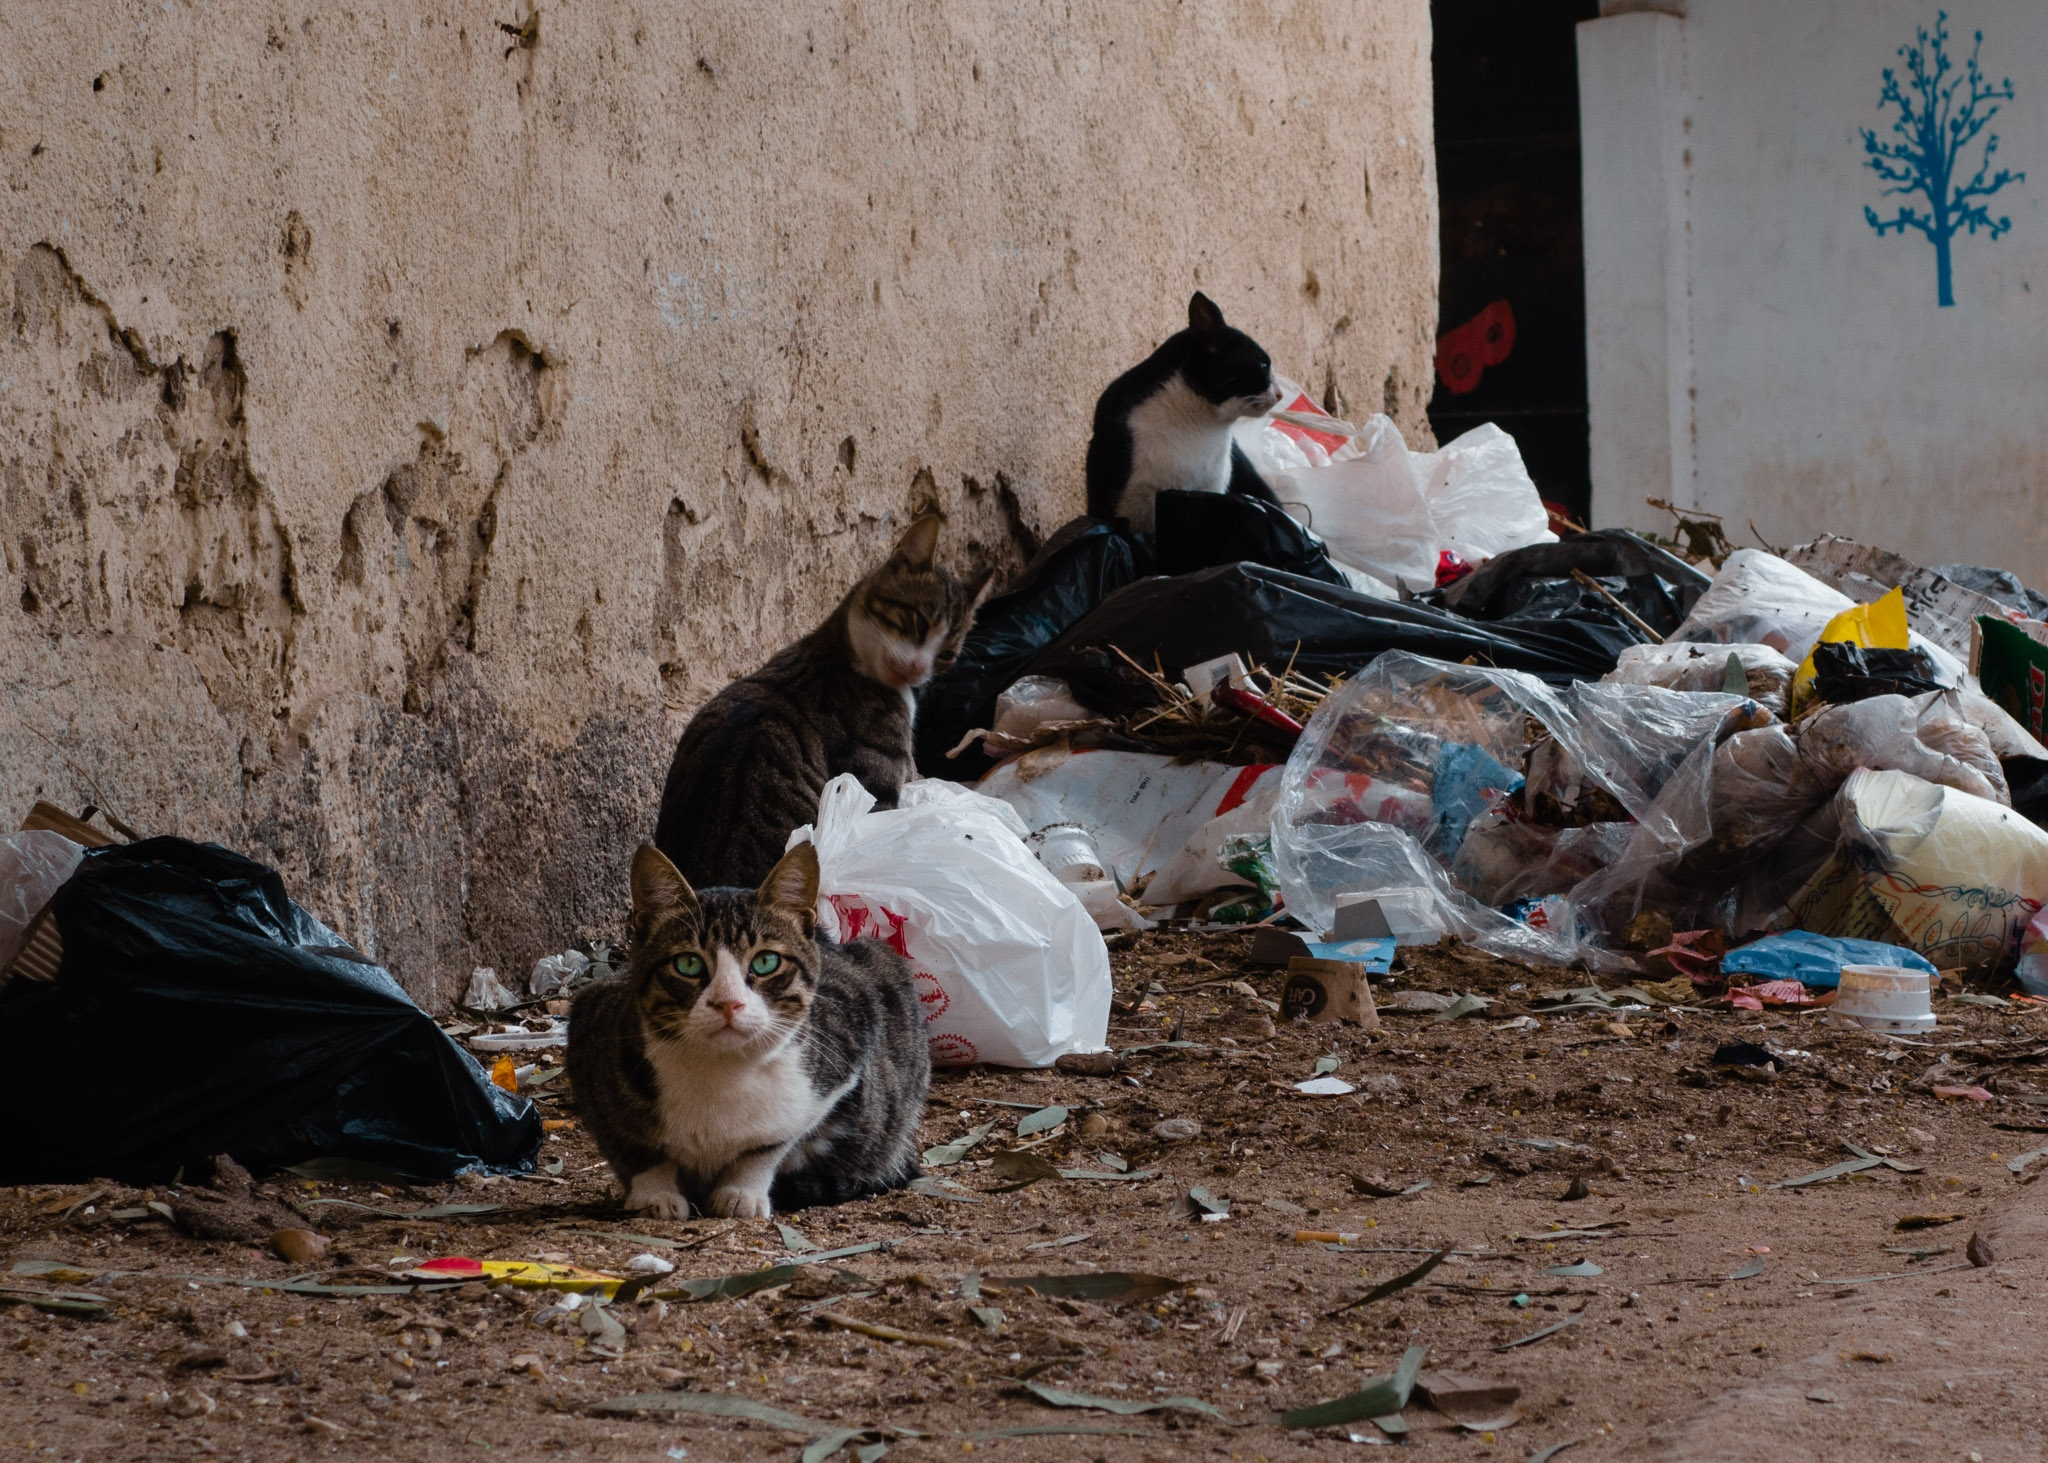 Giza, Egypt: Beauty & Filth